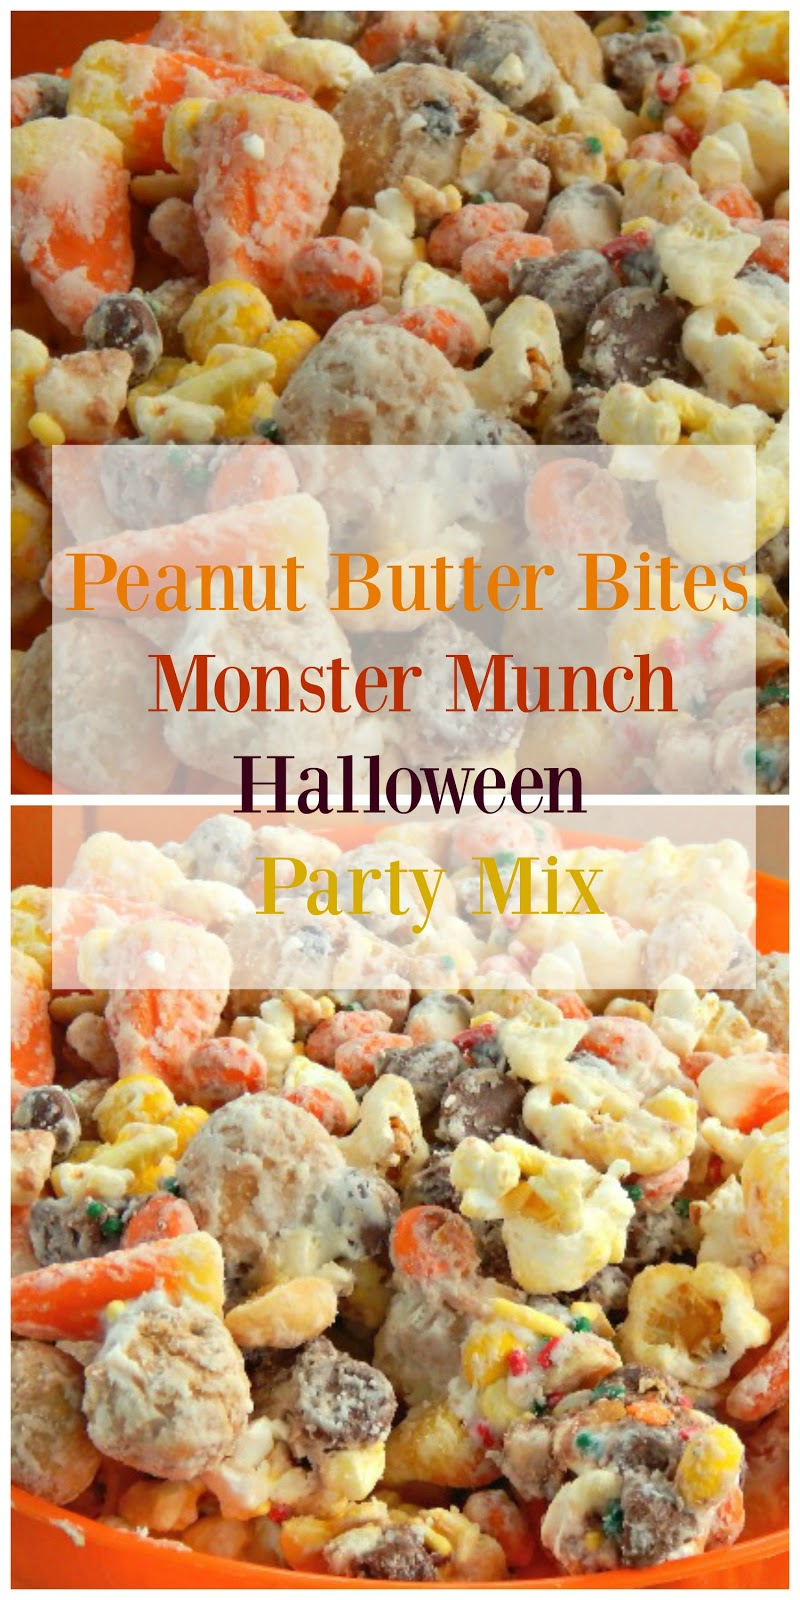 P.B. Bites Monster Munch Halloween Party Mix - This Ole Mom